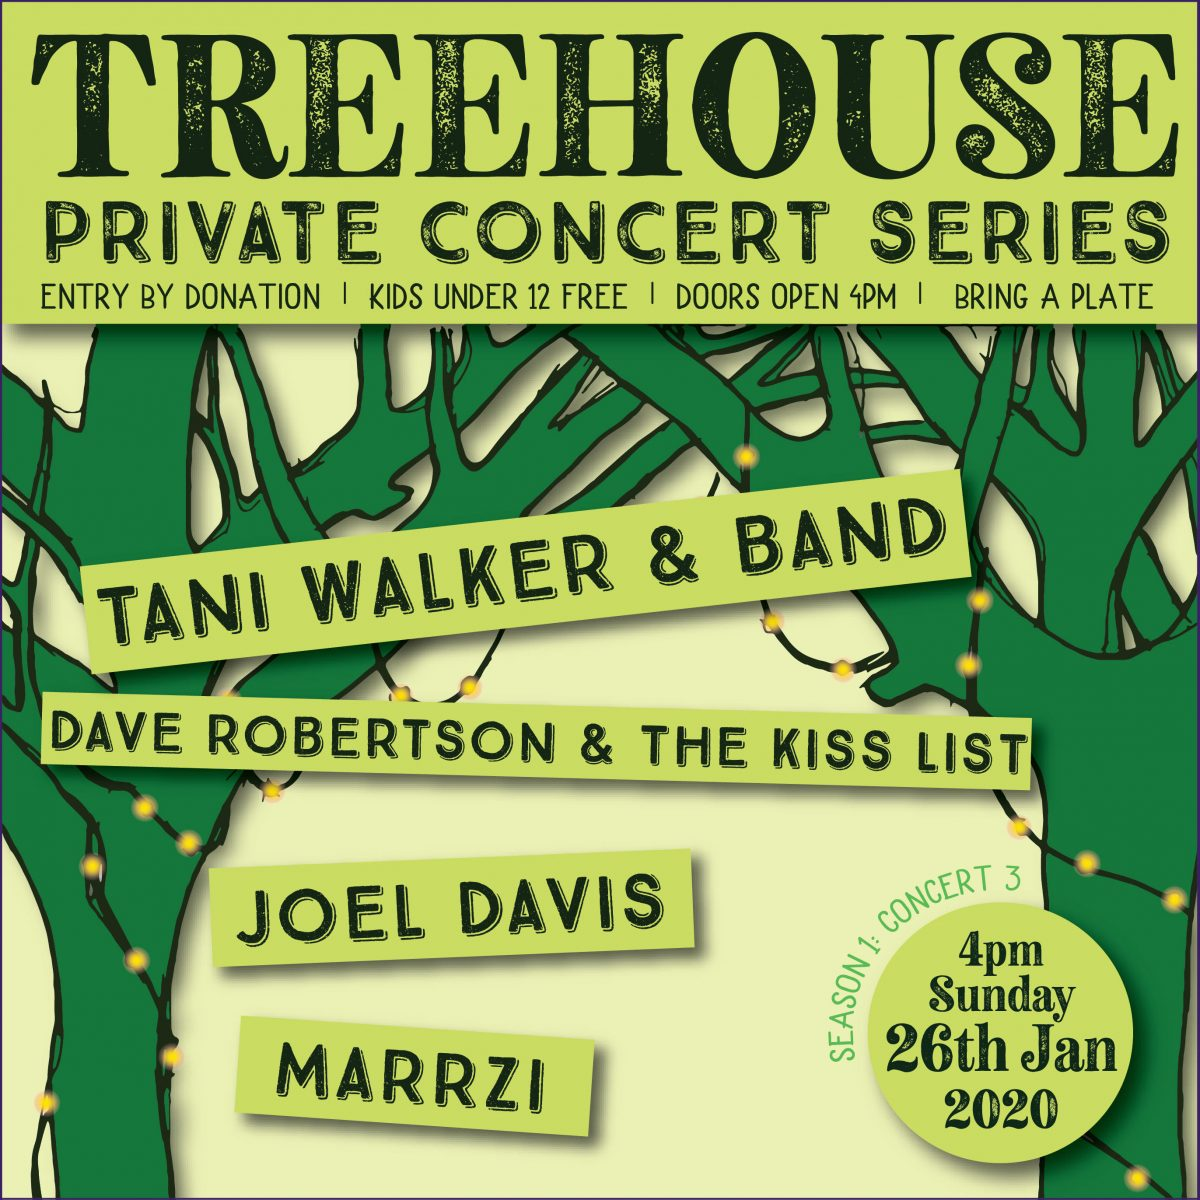 Treehouse Private Concert